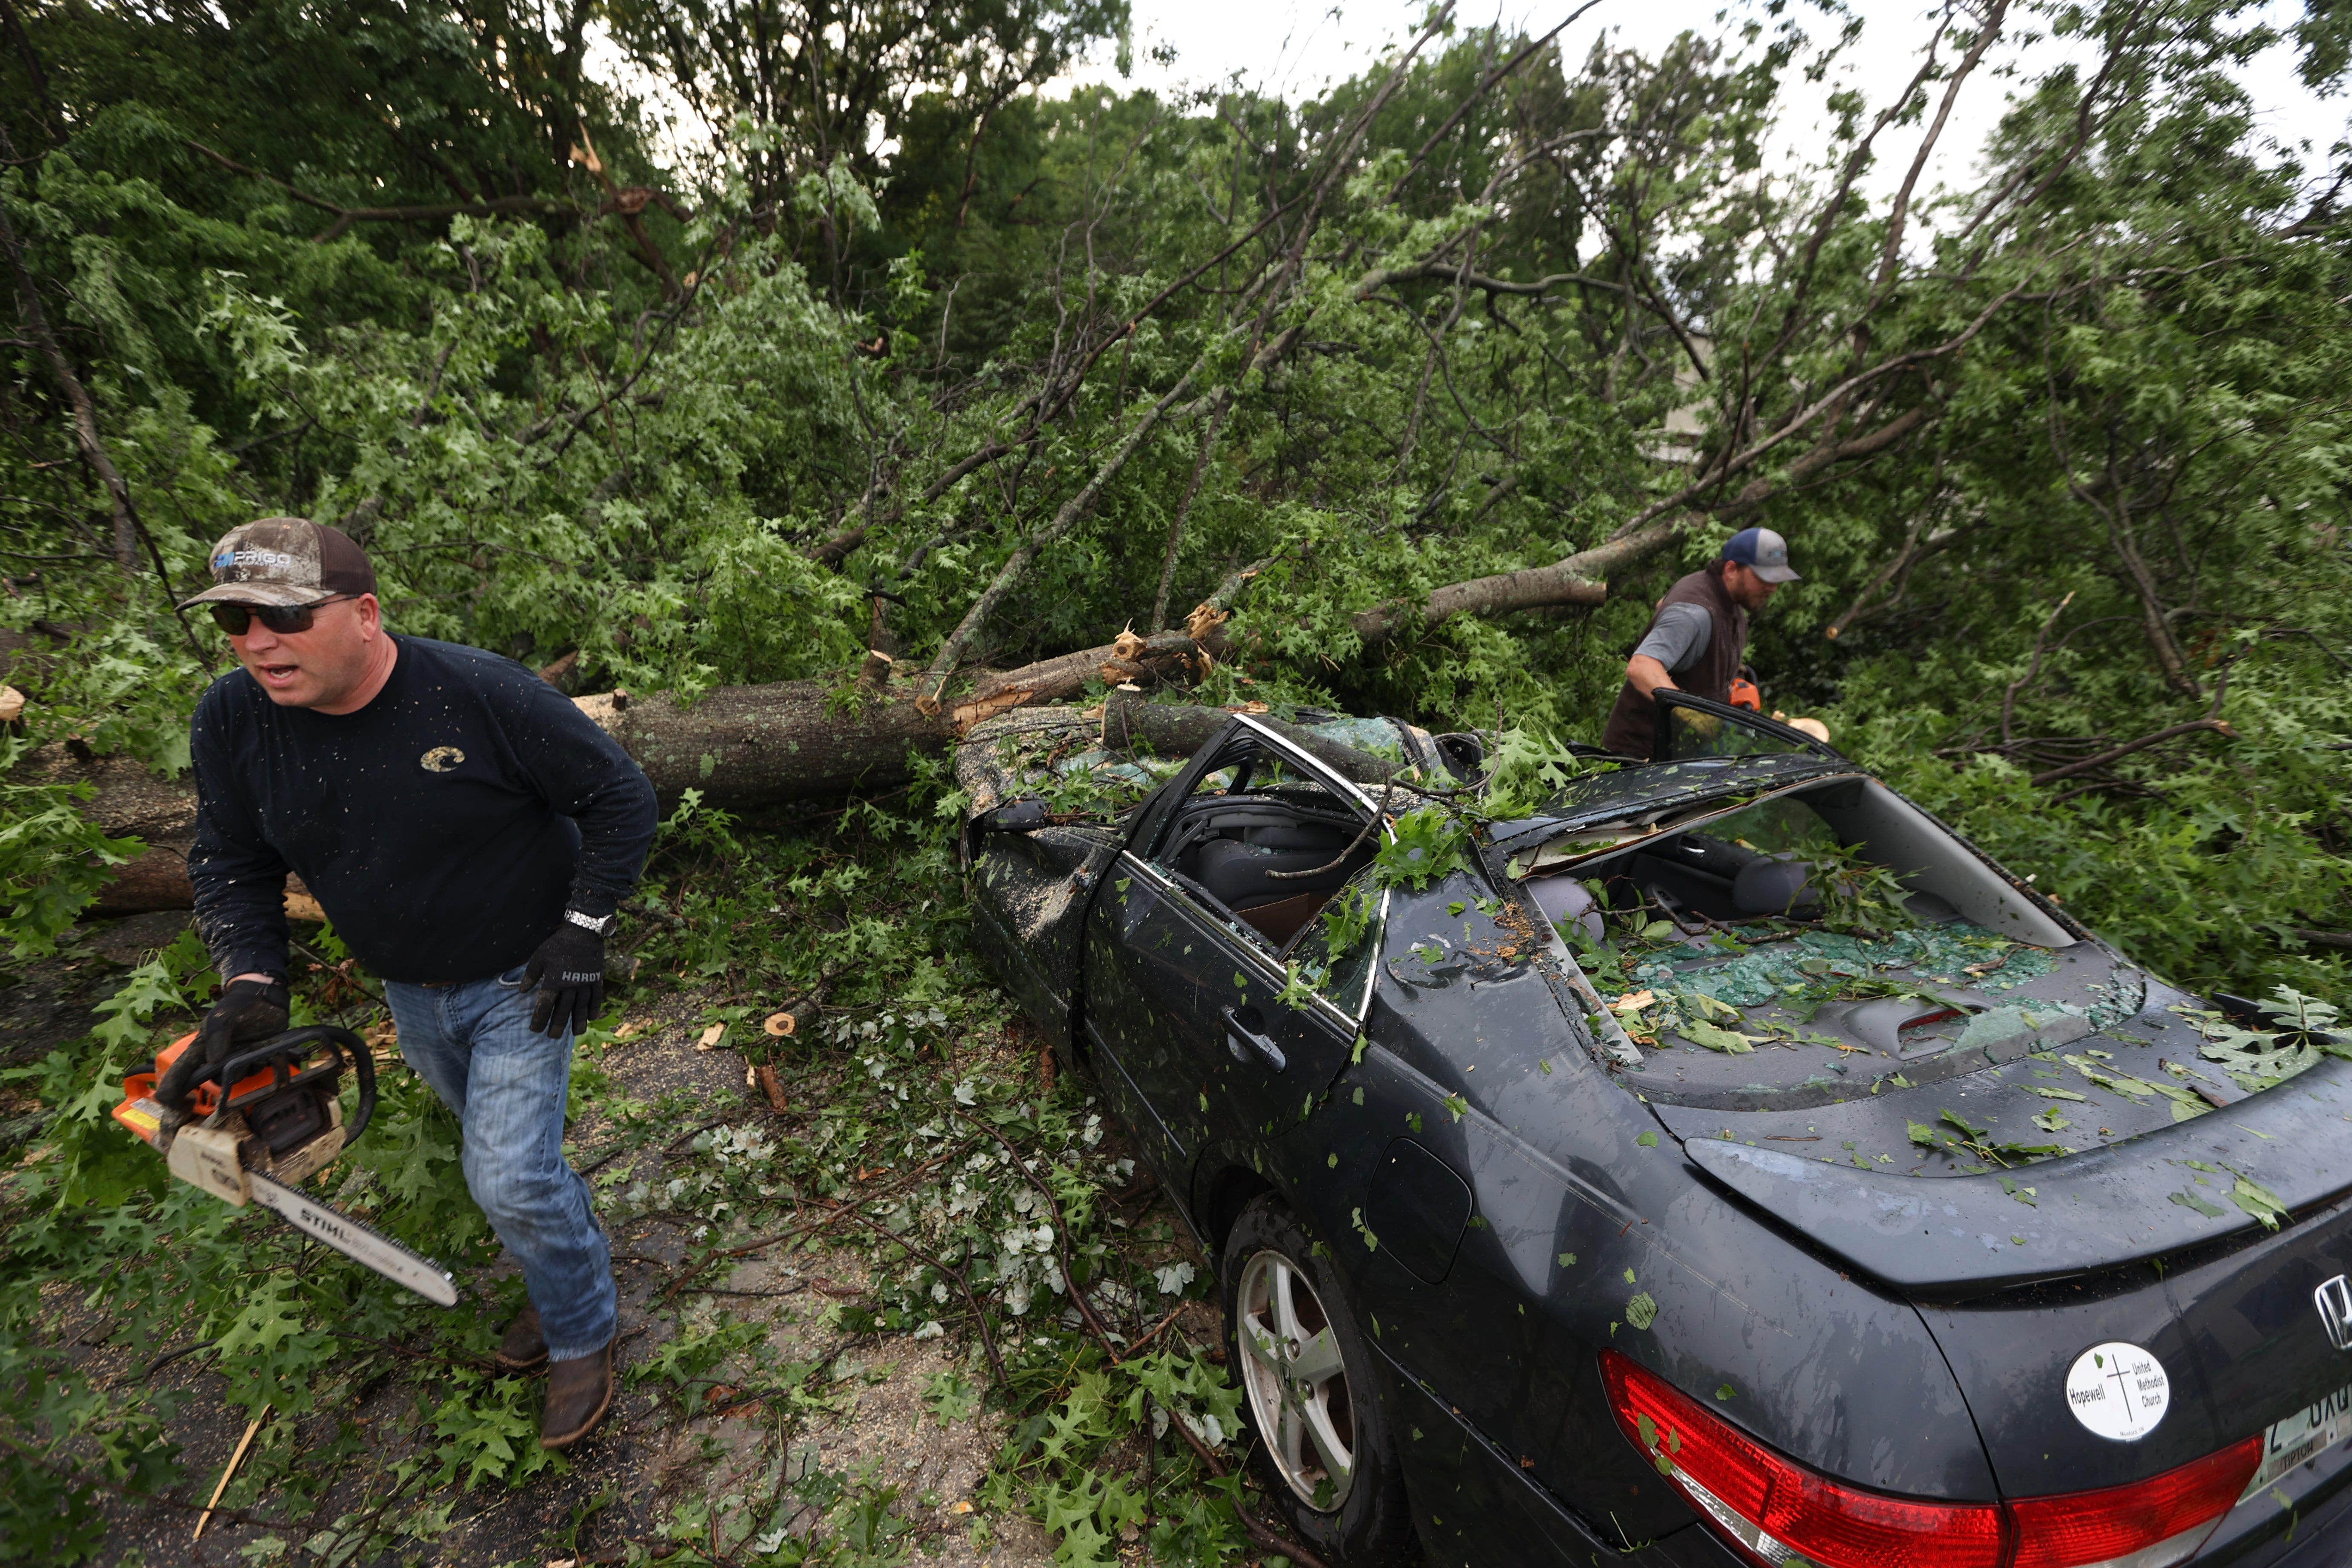 Bryan Bomar works to help cut a damaged car loose from a fallen tree on family property after a tornado touched down in Tipton County on Sunday, May 9, 2021.